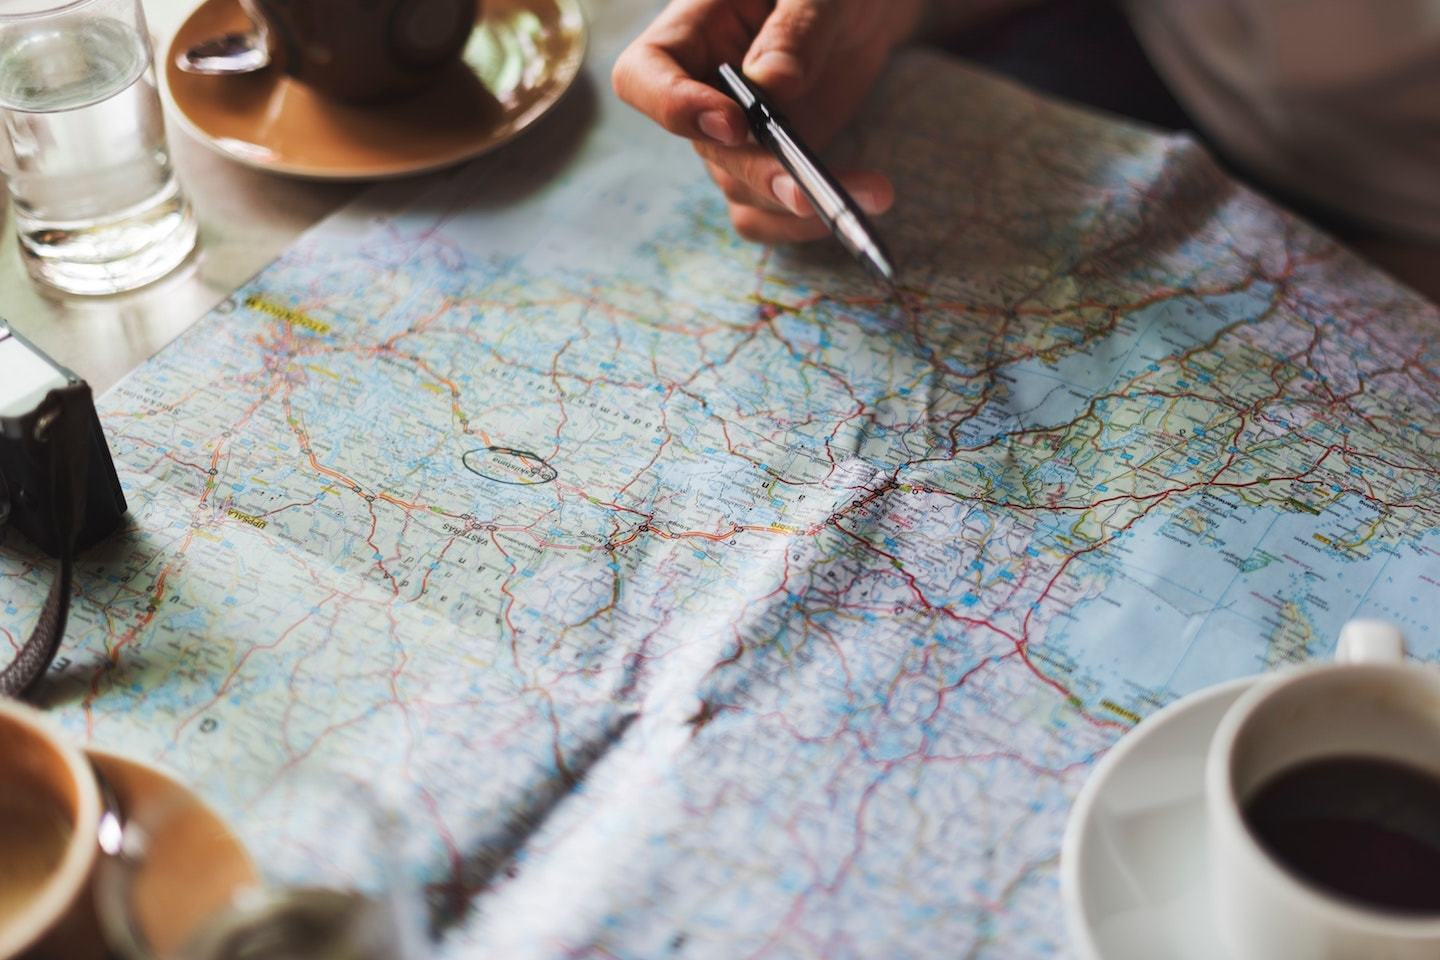 a person holding a pen over a map with coffee